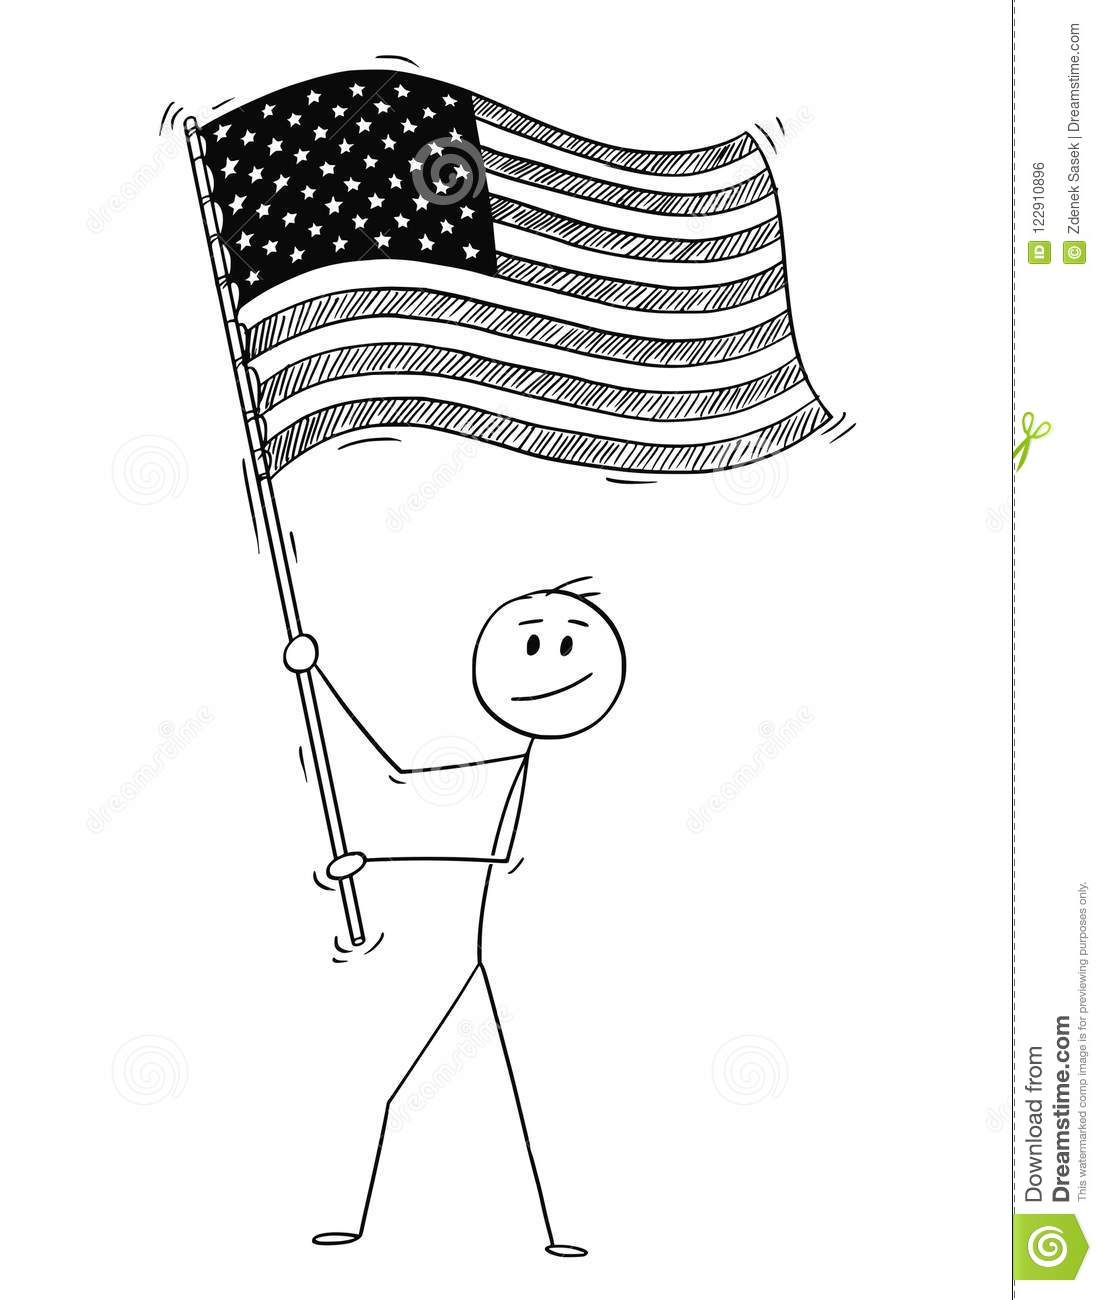 Cartoon Of Man Waving The Flag Of United States Of America Or Usa